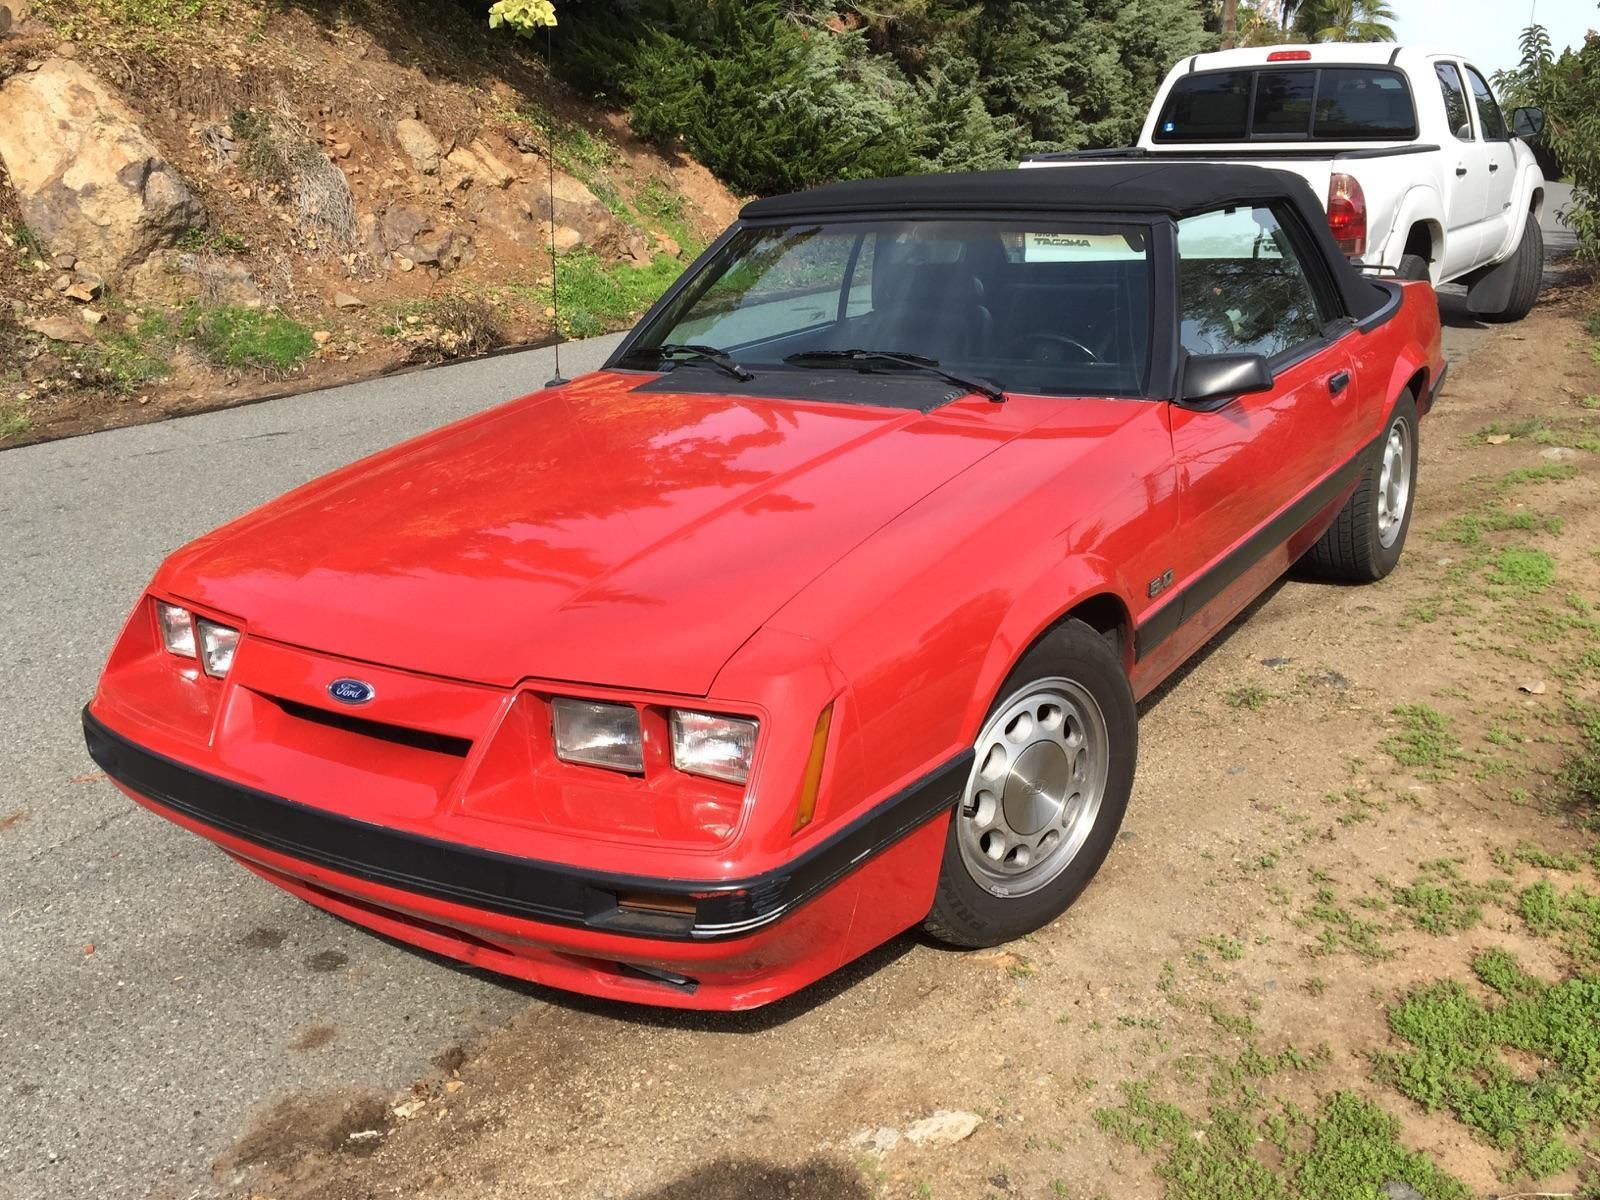 clean 1986 mustang convertible 94k miles red with black interior top san diego for sale in san. Black Bedroom Furniture Sets. Home Design Ideas